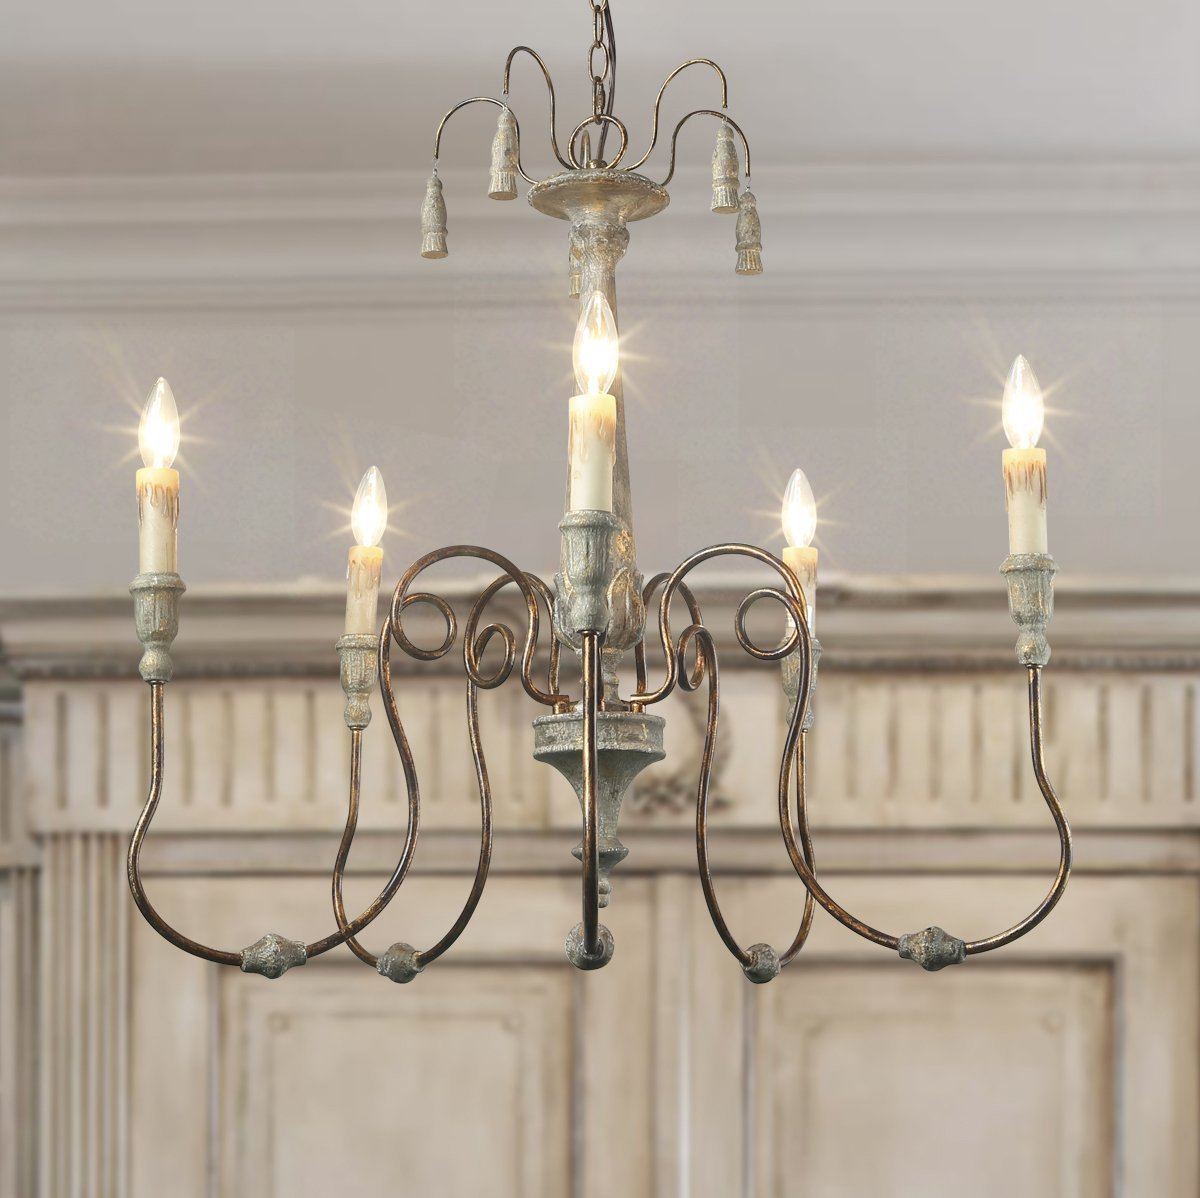 French country Laluz chandelier